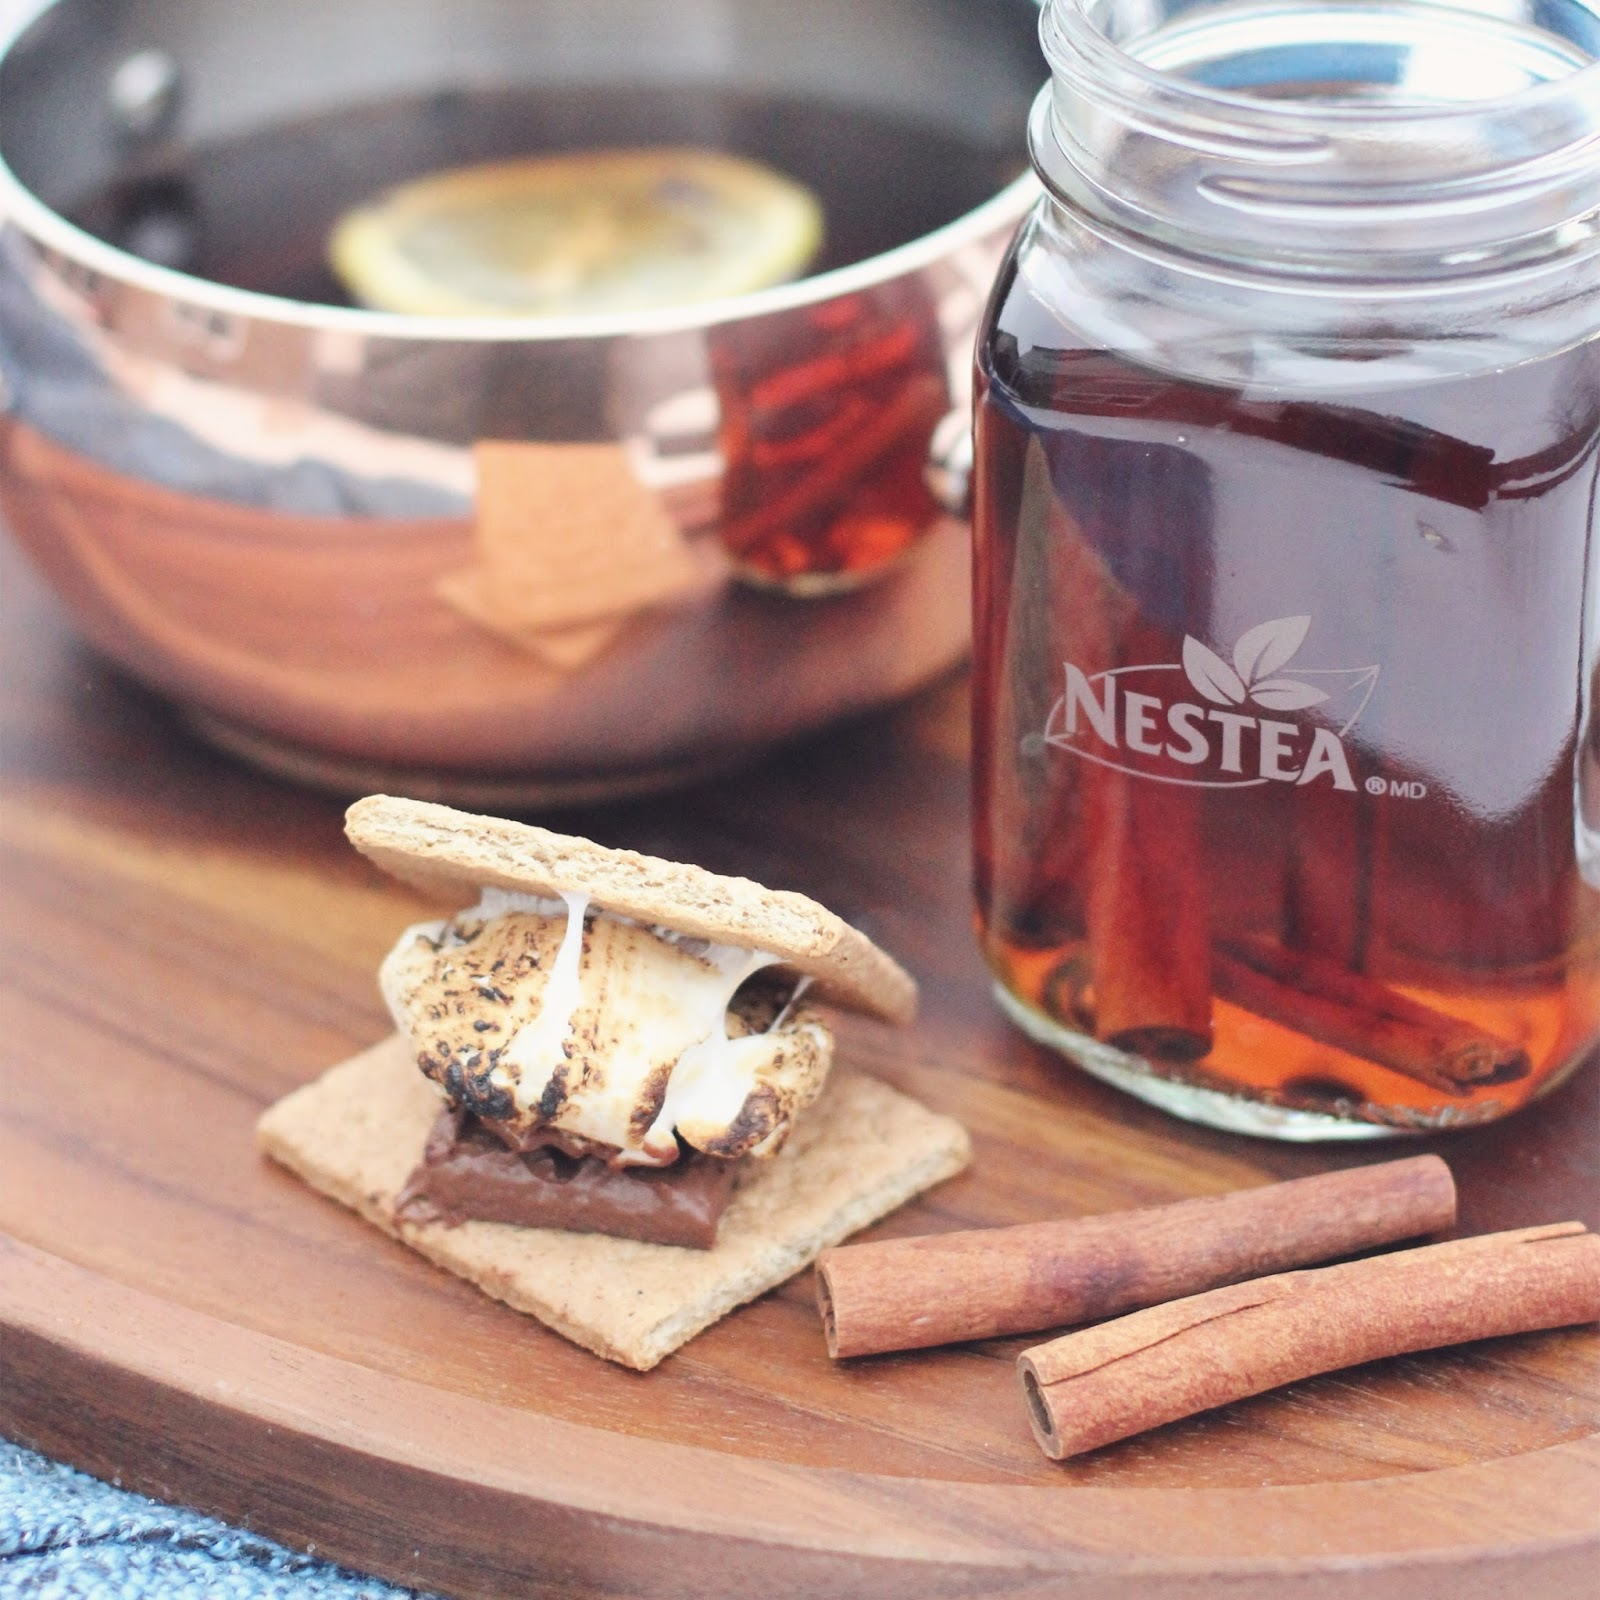 Mulled-Currant-Tea-Nestea-Smores